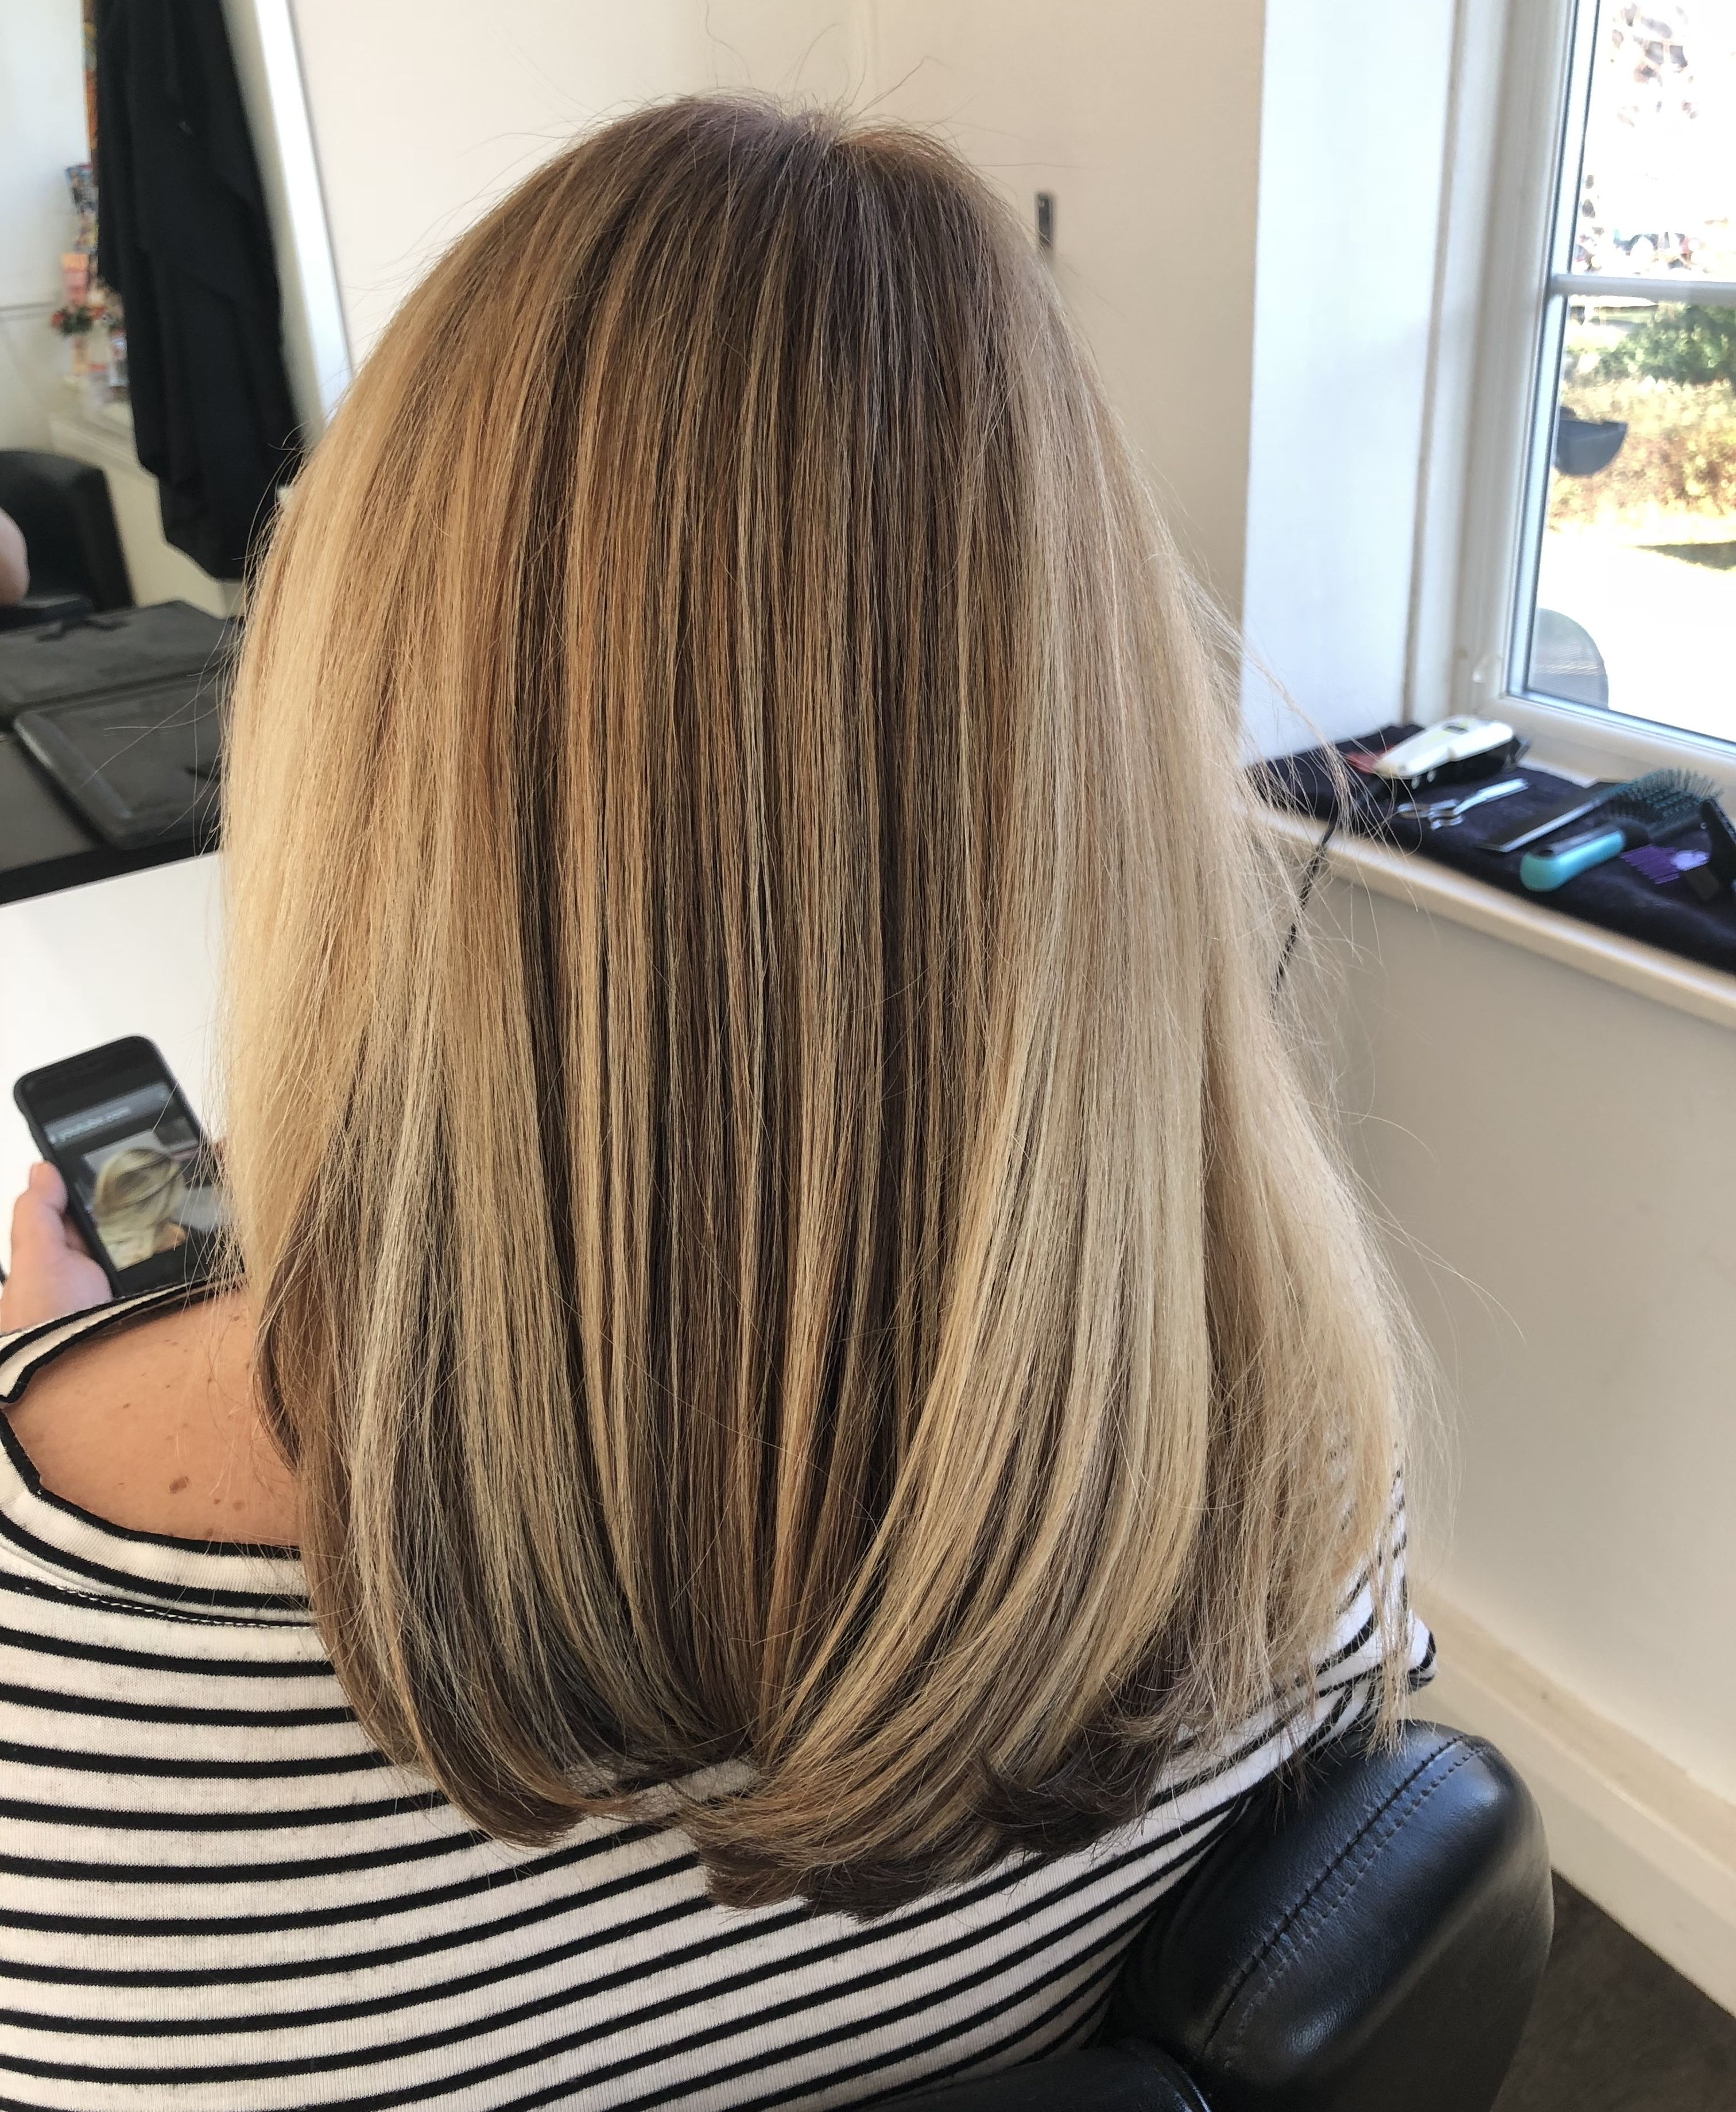 Dry Cut Hairdressers Near Me